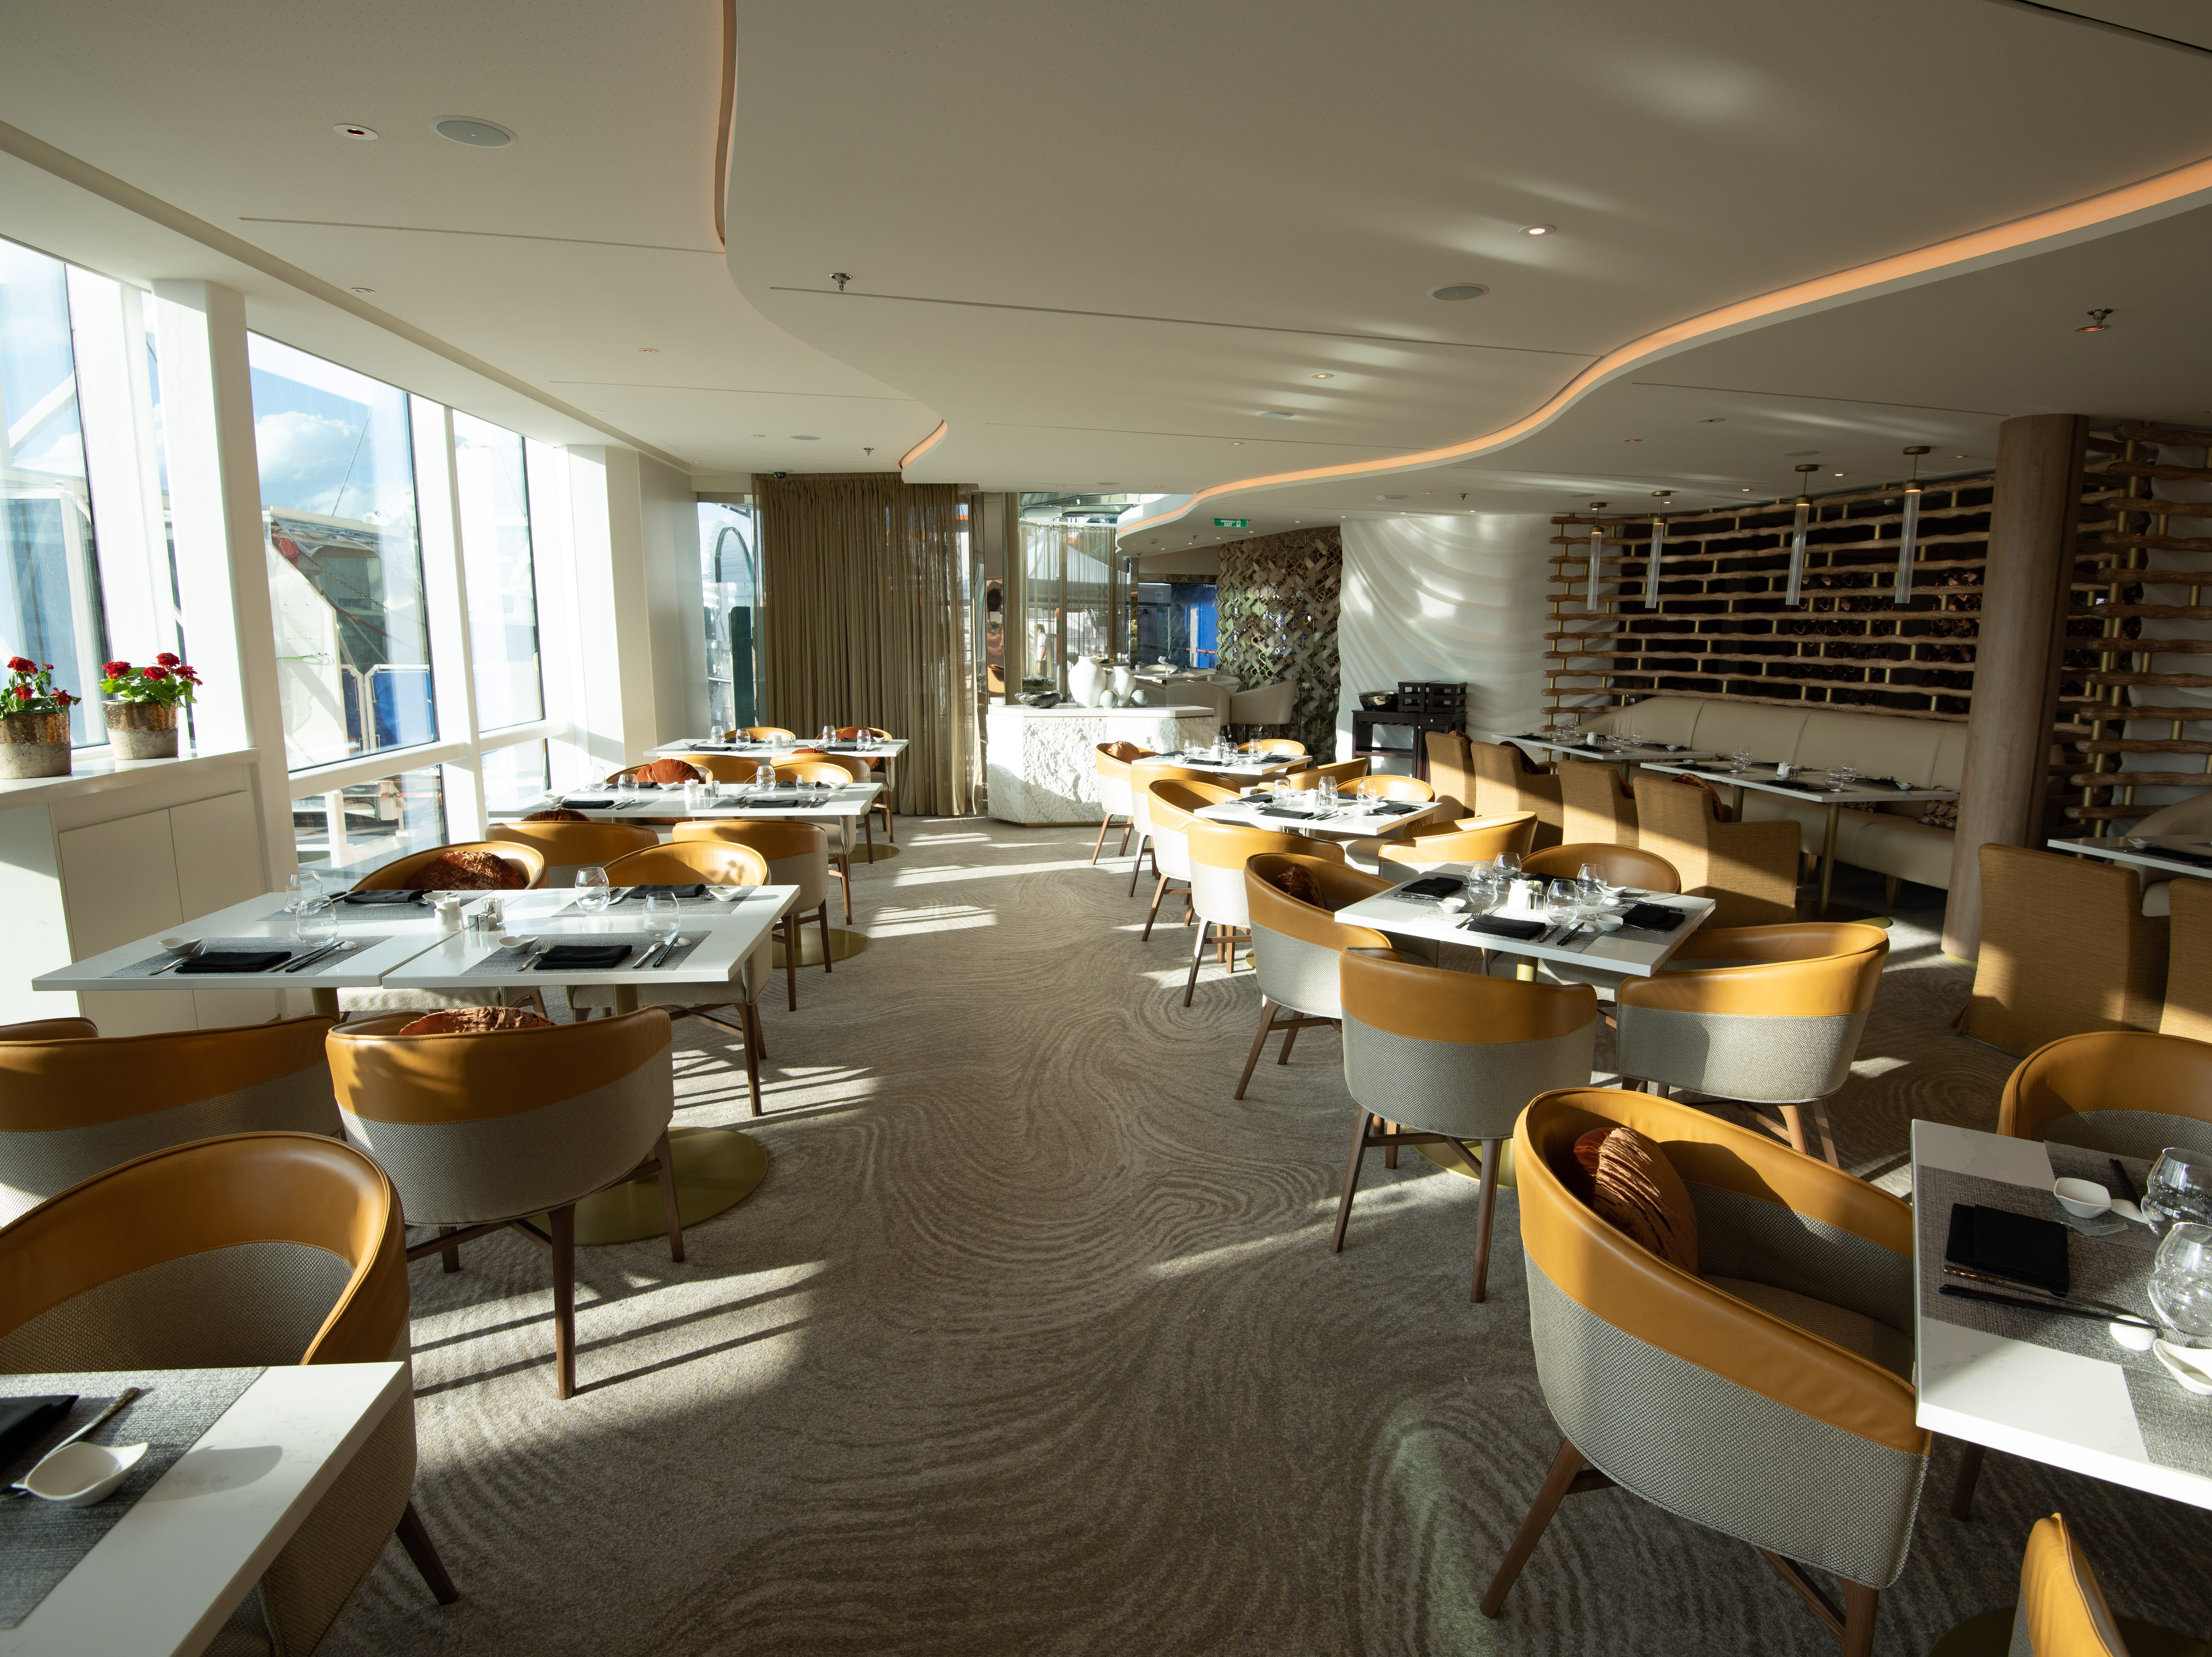 Located on Deck 5, Raw on 5 seats 60 people and is priced a la carte.